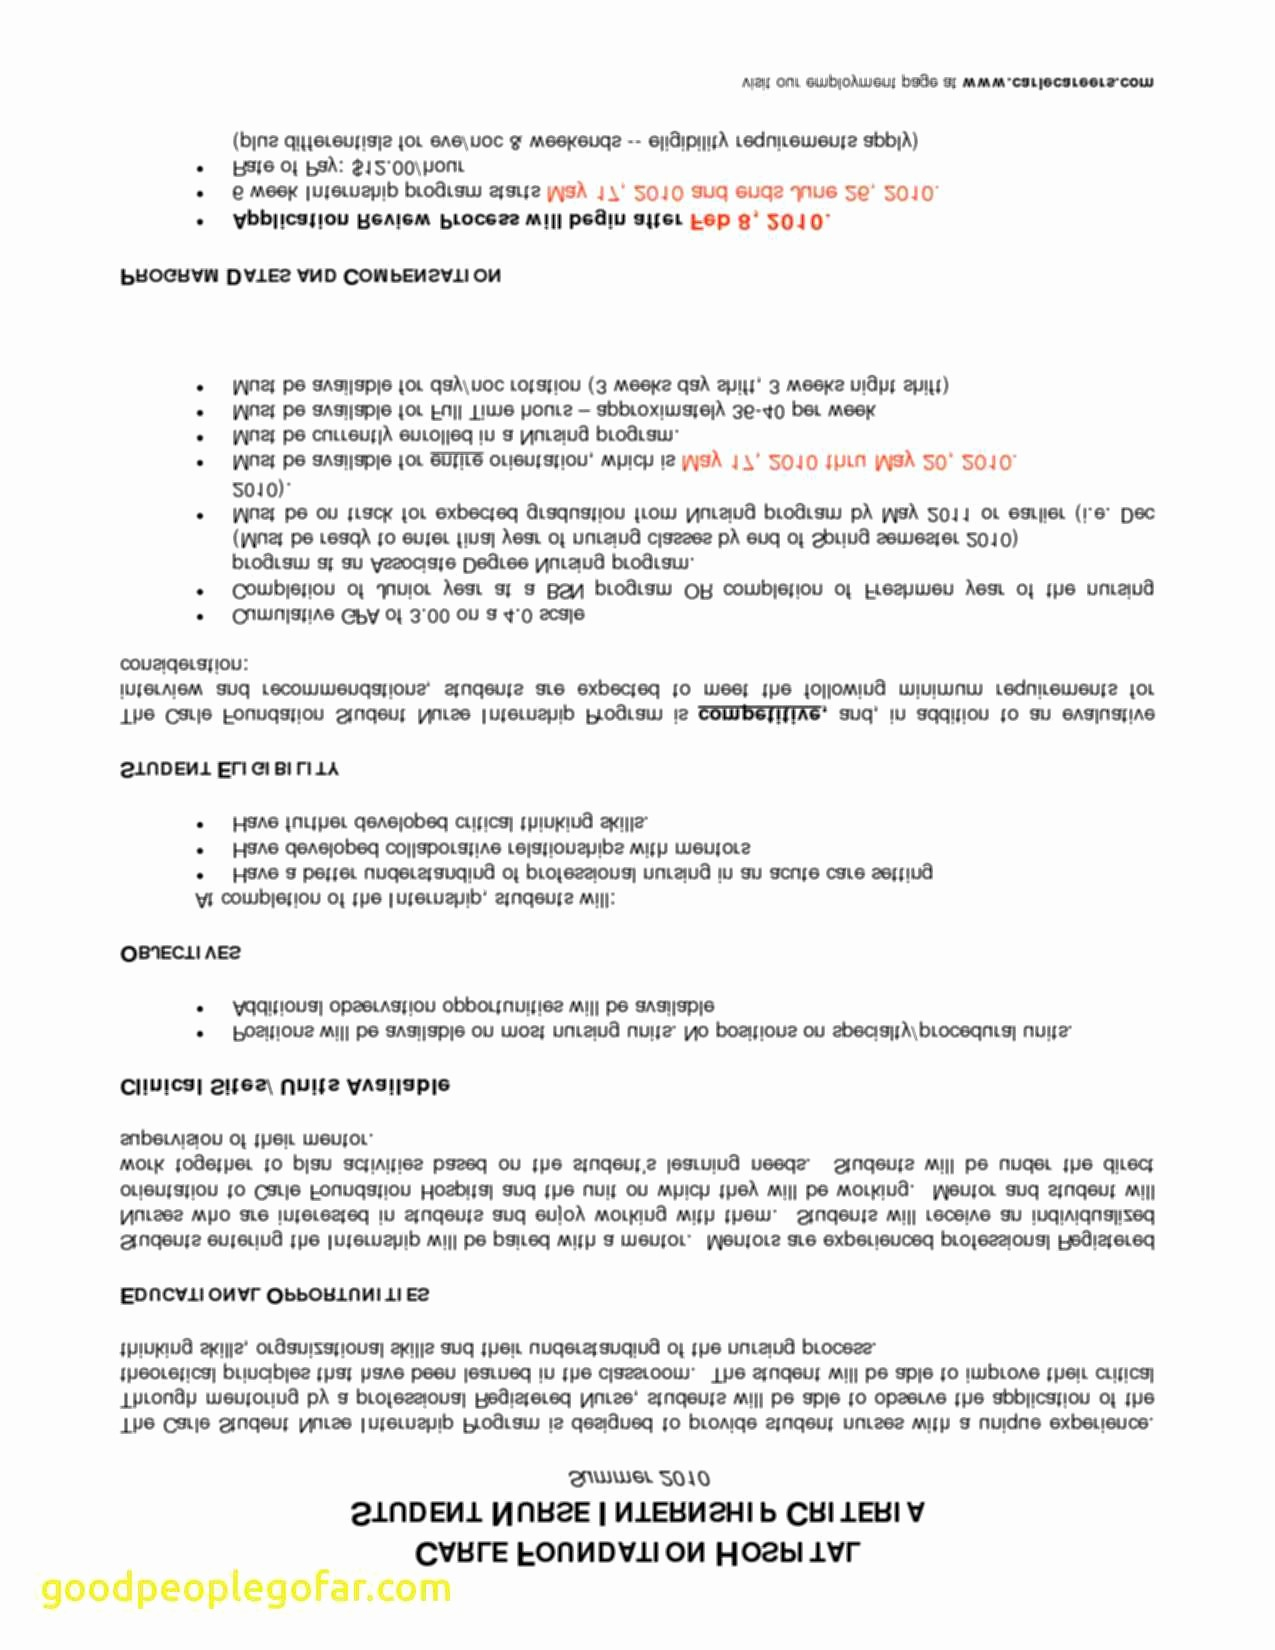 Call Center Job Description for Resume - Inbound Call Center Job Description for Resume